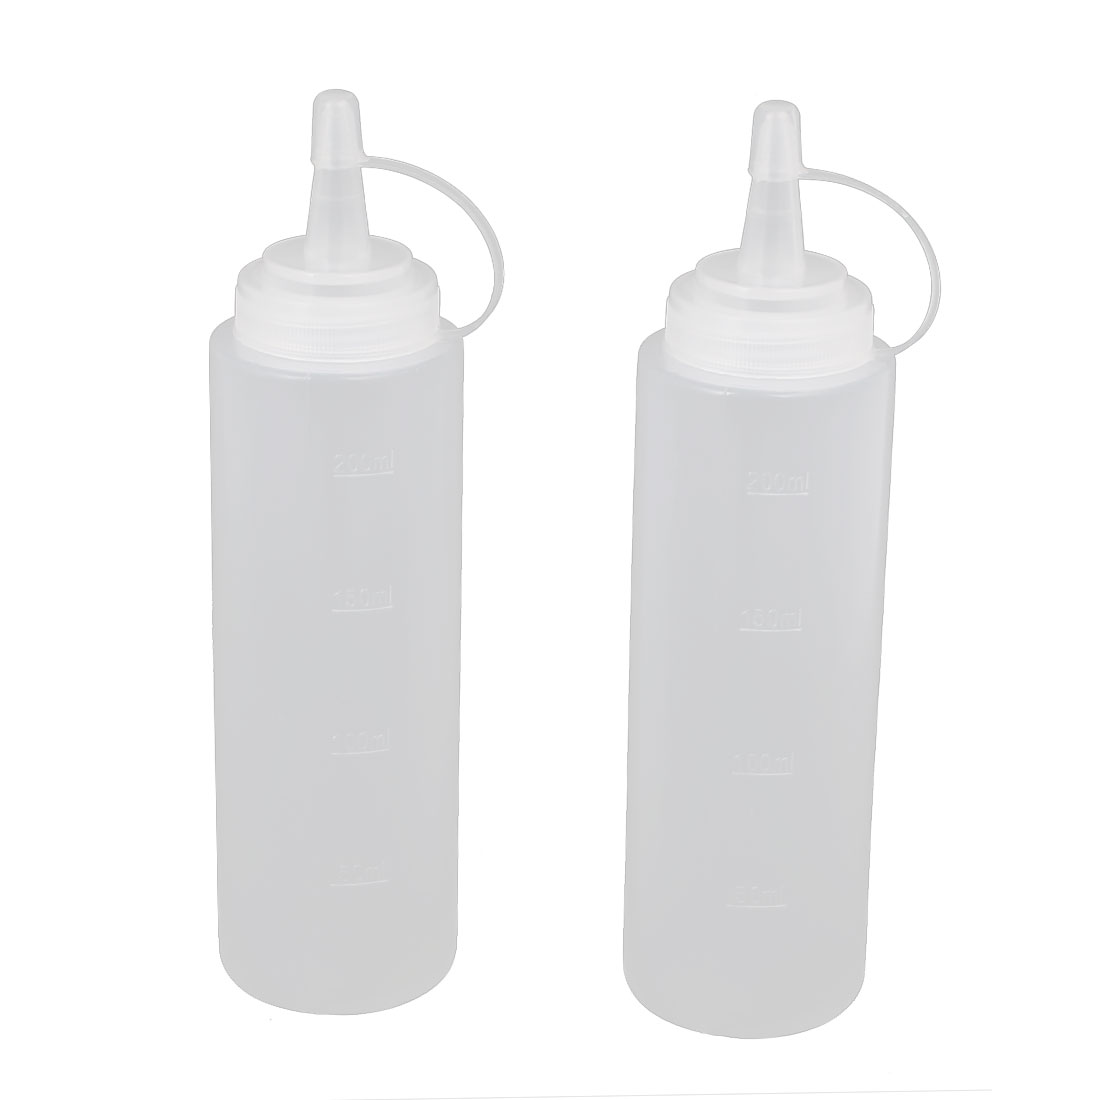 2Pcs 200ml Kitchen Plastic Squeeze Bottles Condiment Ketchup Mustard Oil Salt by Unique-Bargains